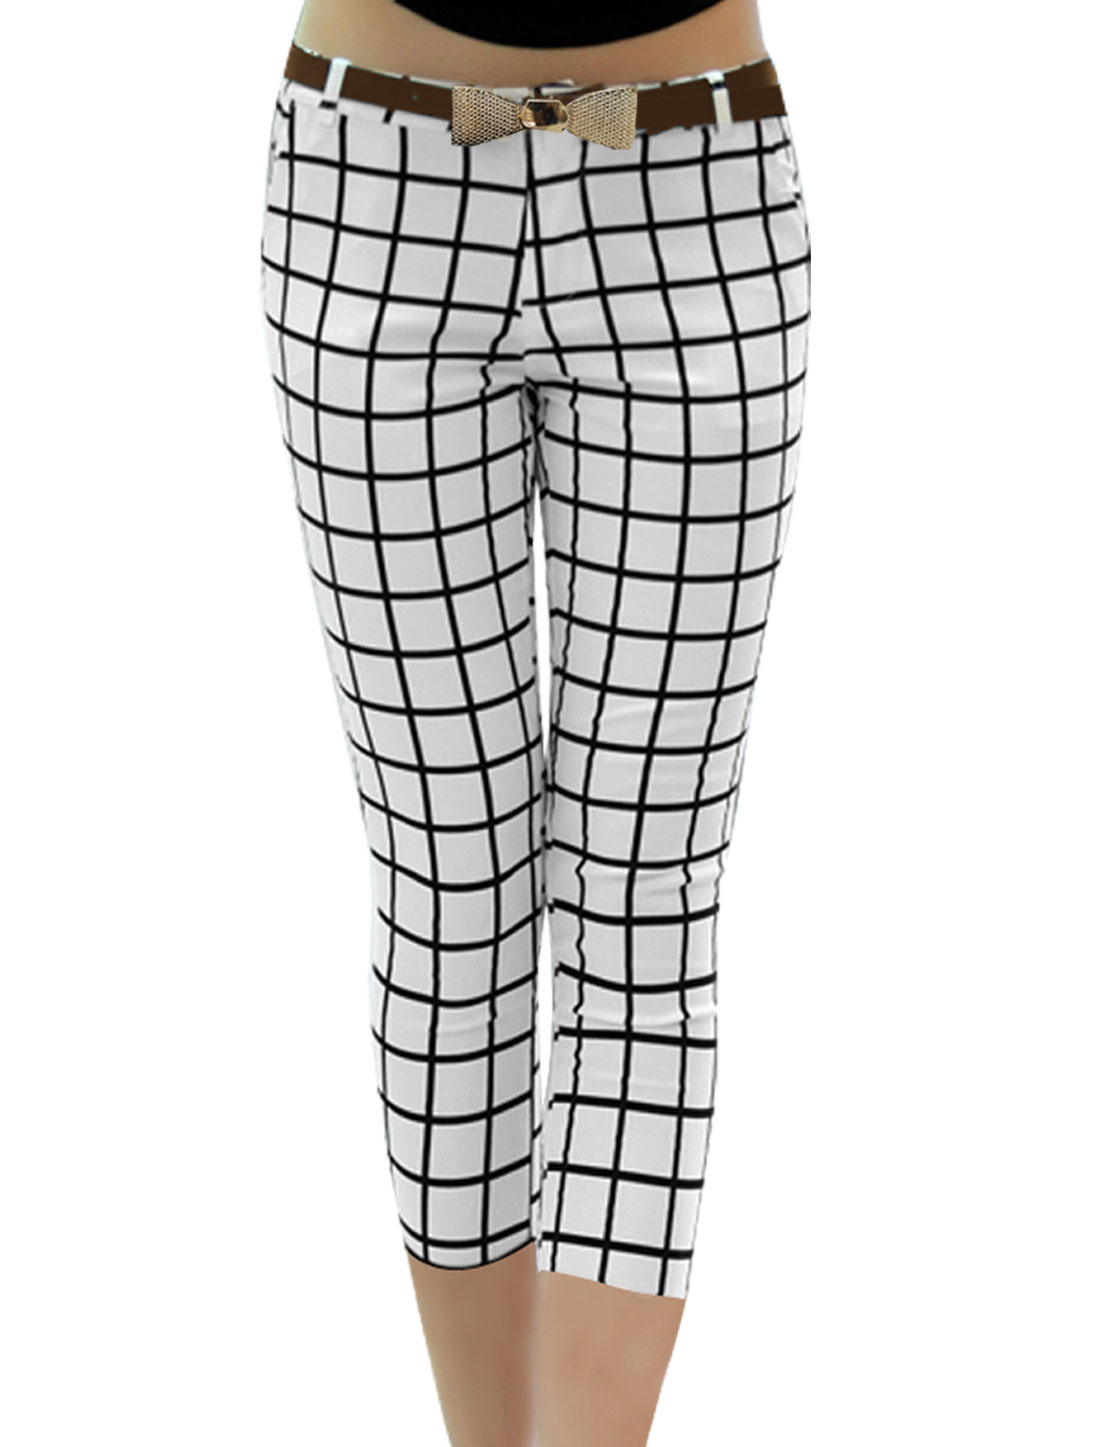 Lady Fashion Belt Loop Waist Stretchy Plaids Prints White Black Pants XS